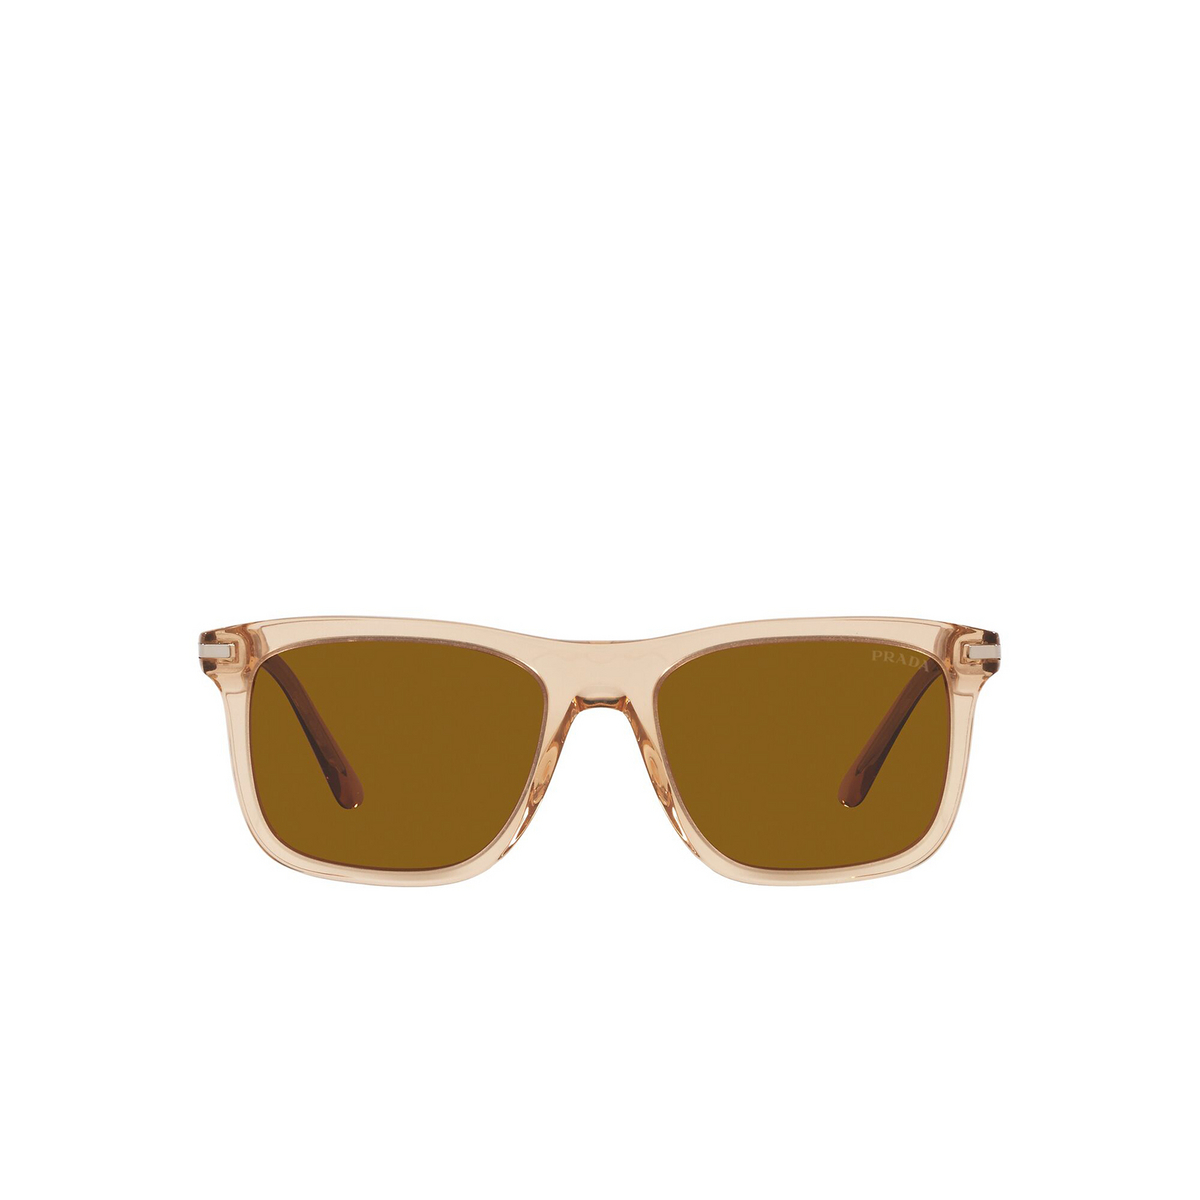 Prada® Rectangle Sunglasses: PR 18WS color Amber Crystal 01N05M - front view.